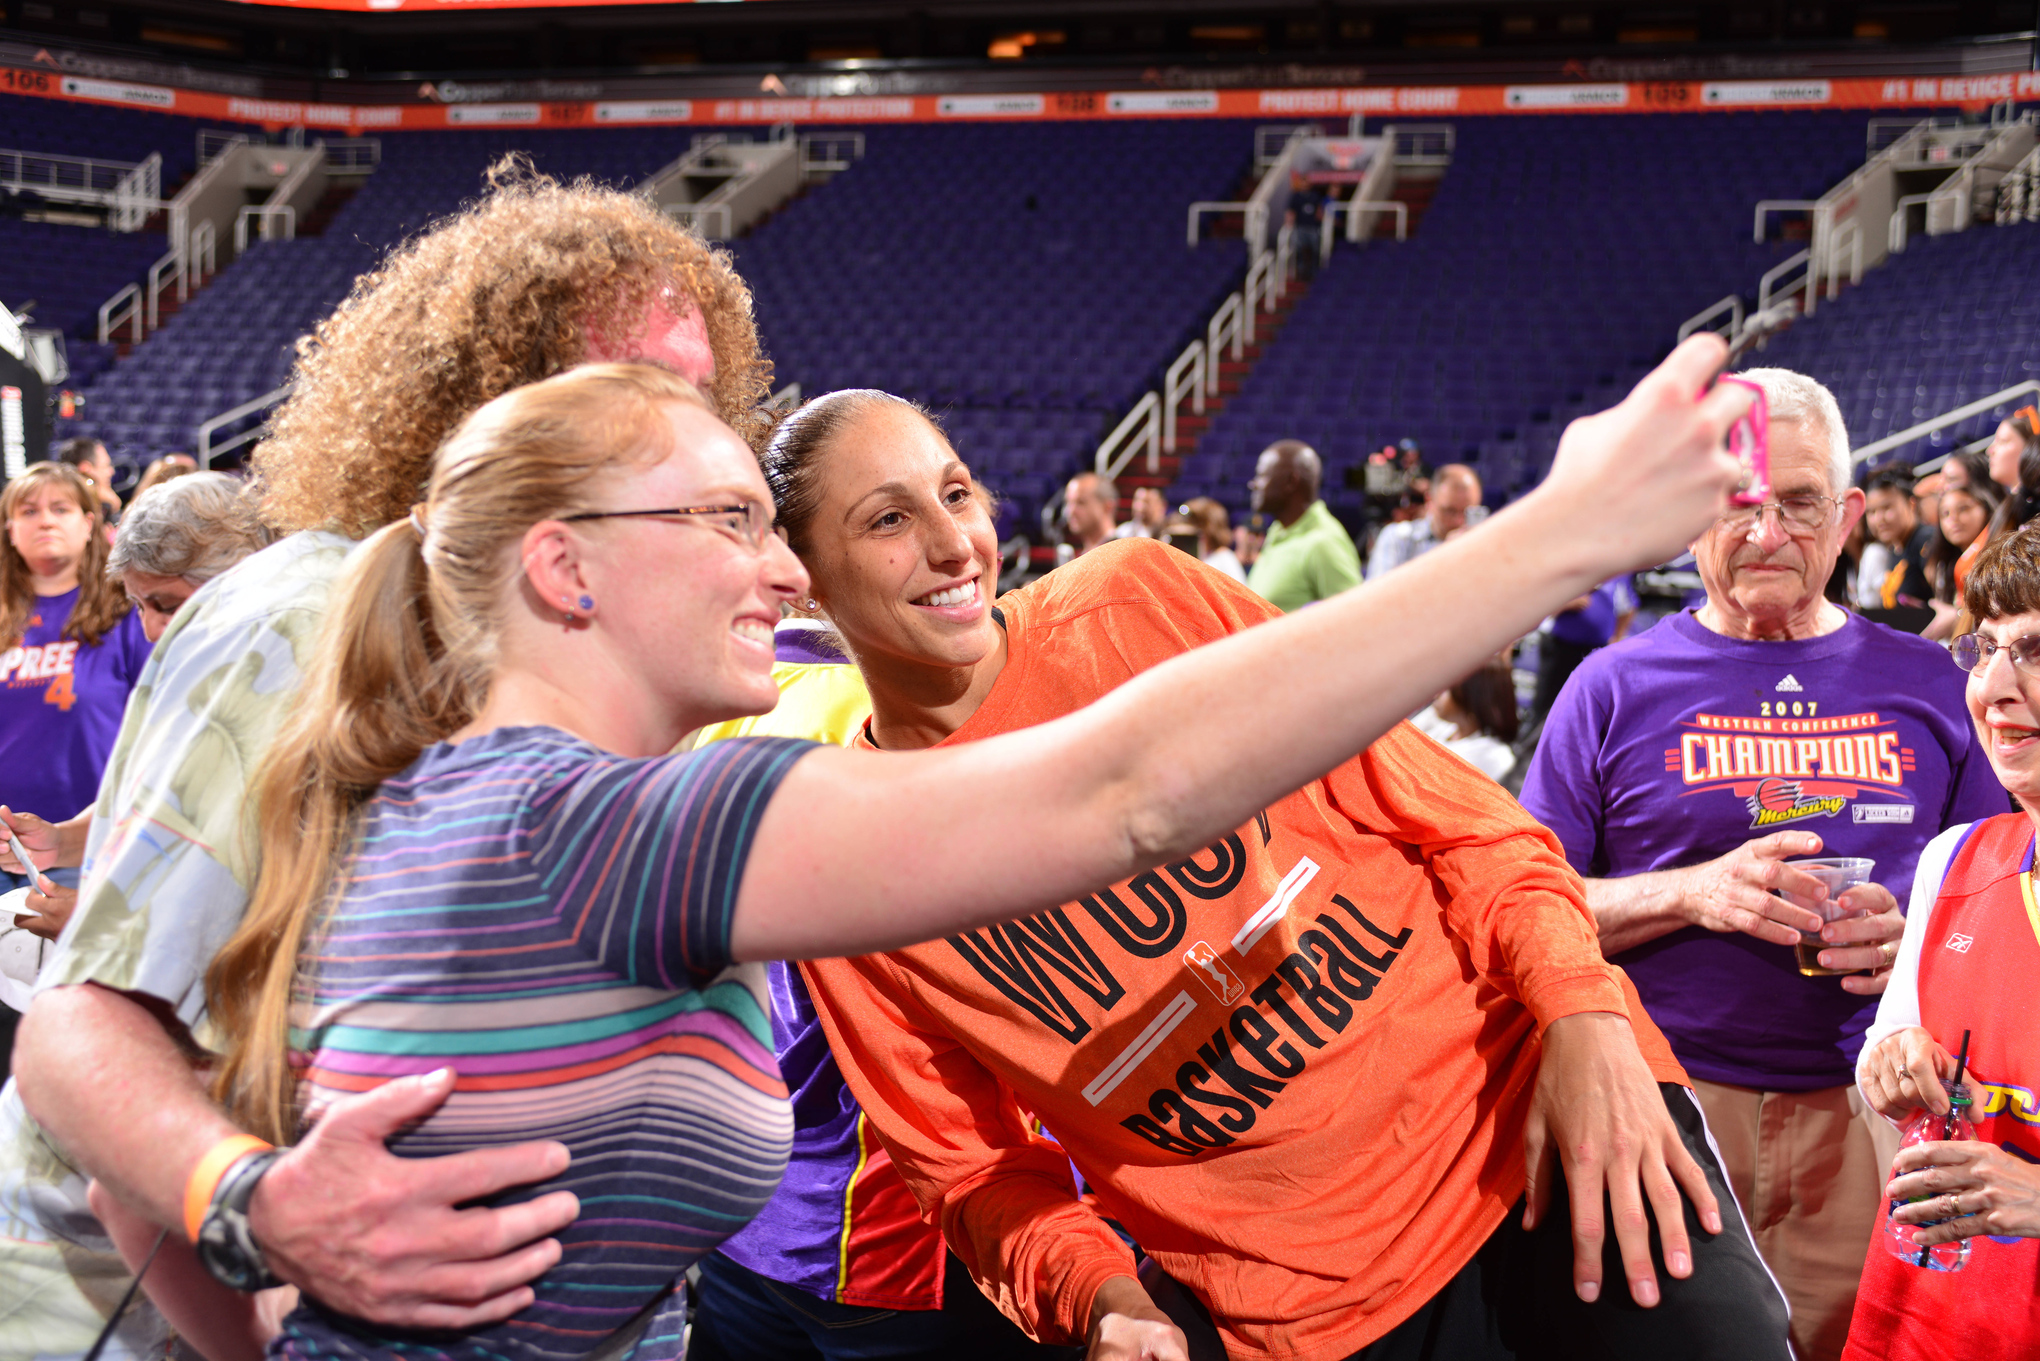 The game's on soon. But first, #LetMeTakeASelfie